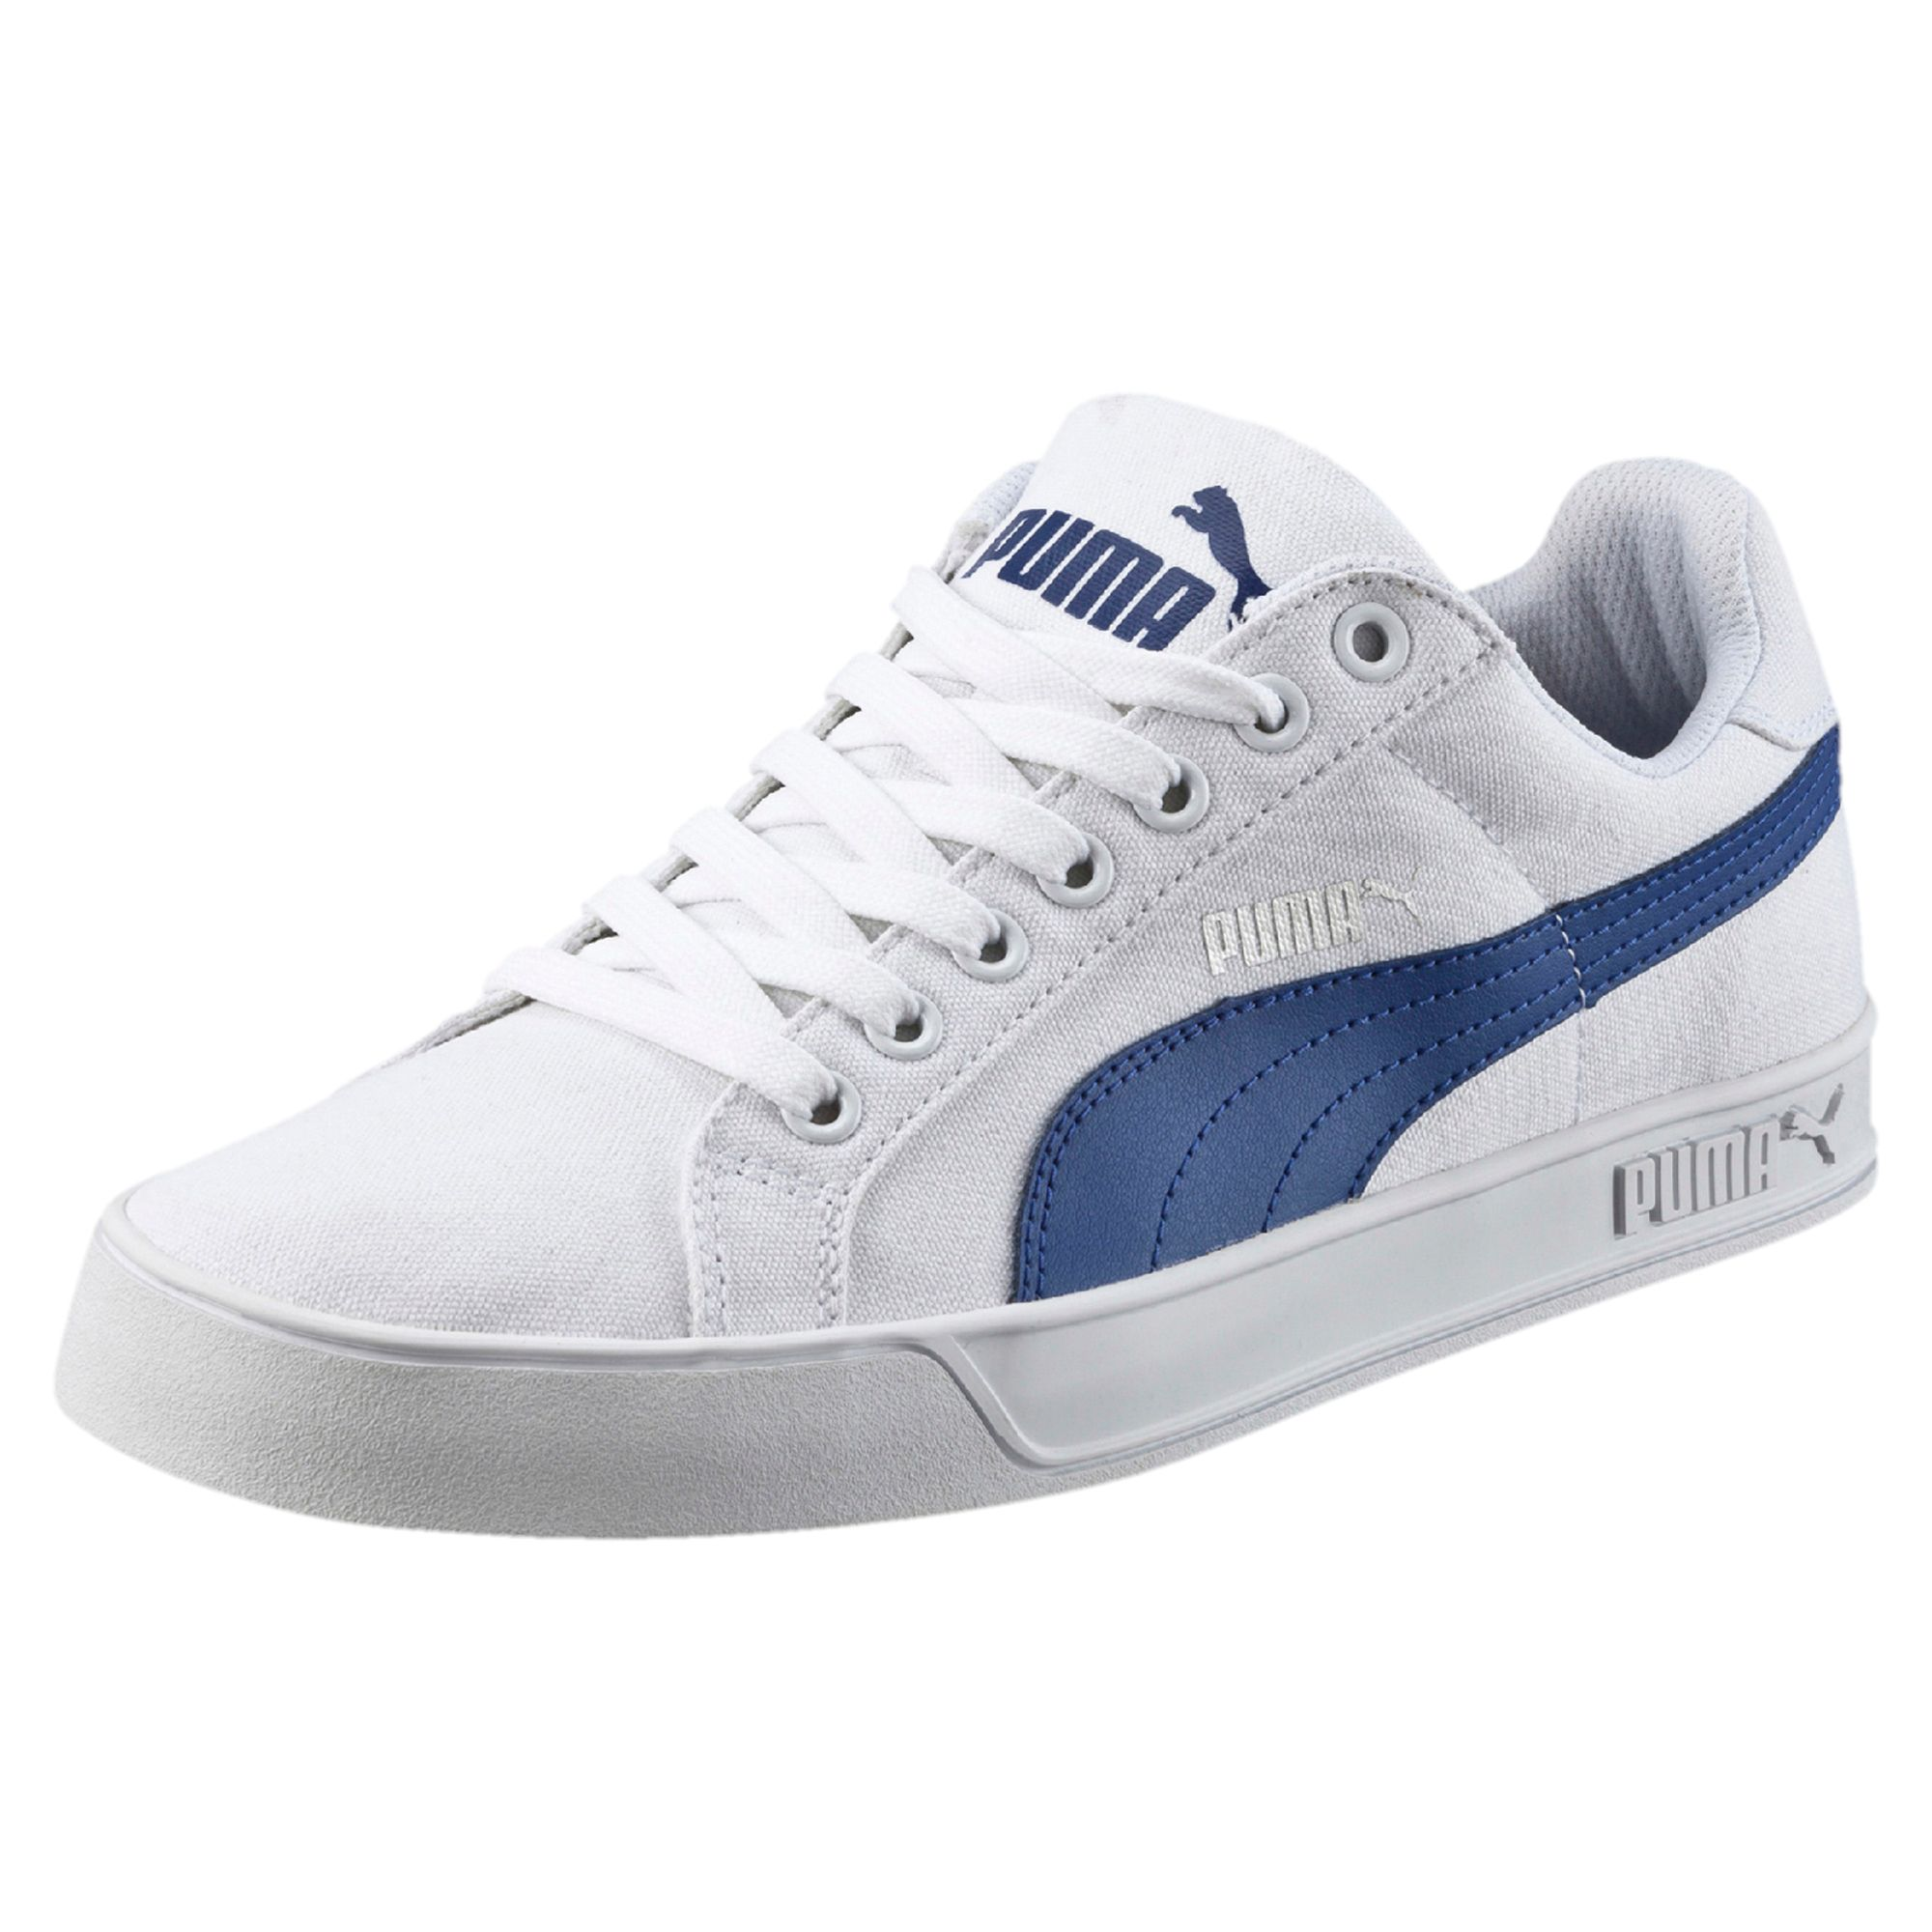 Puma Canvas Shoes White